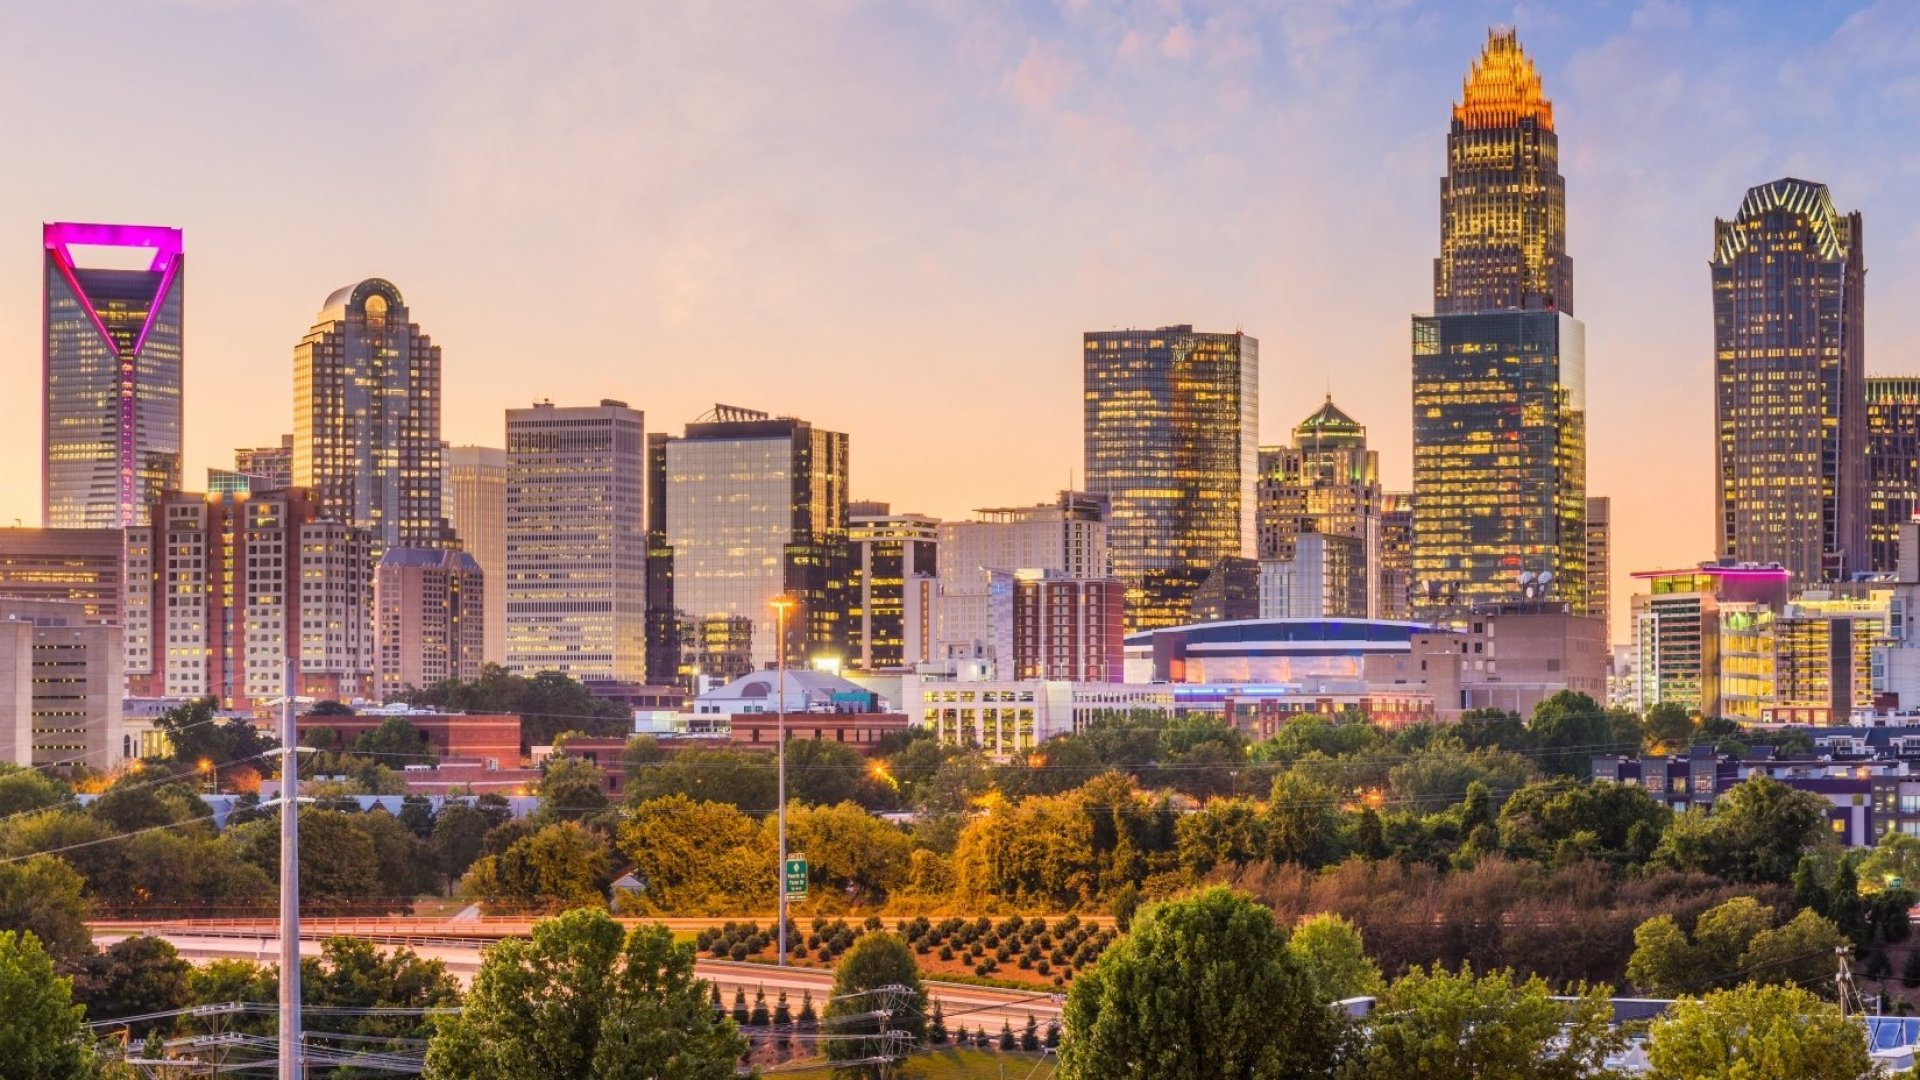 Downtown Charlotte, North Carolina.